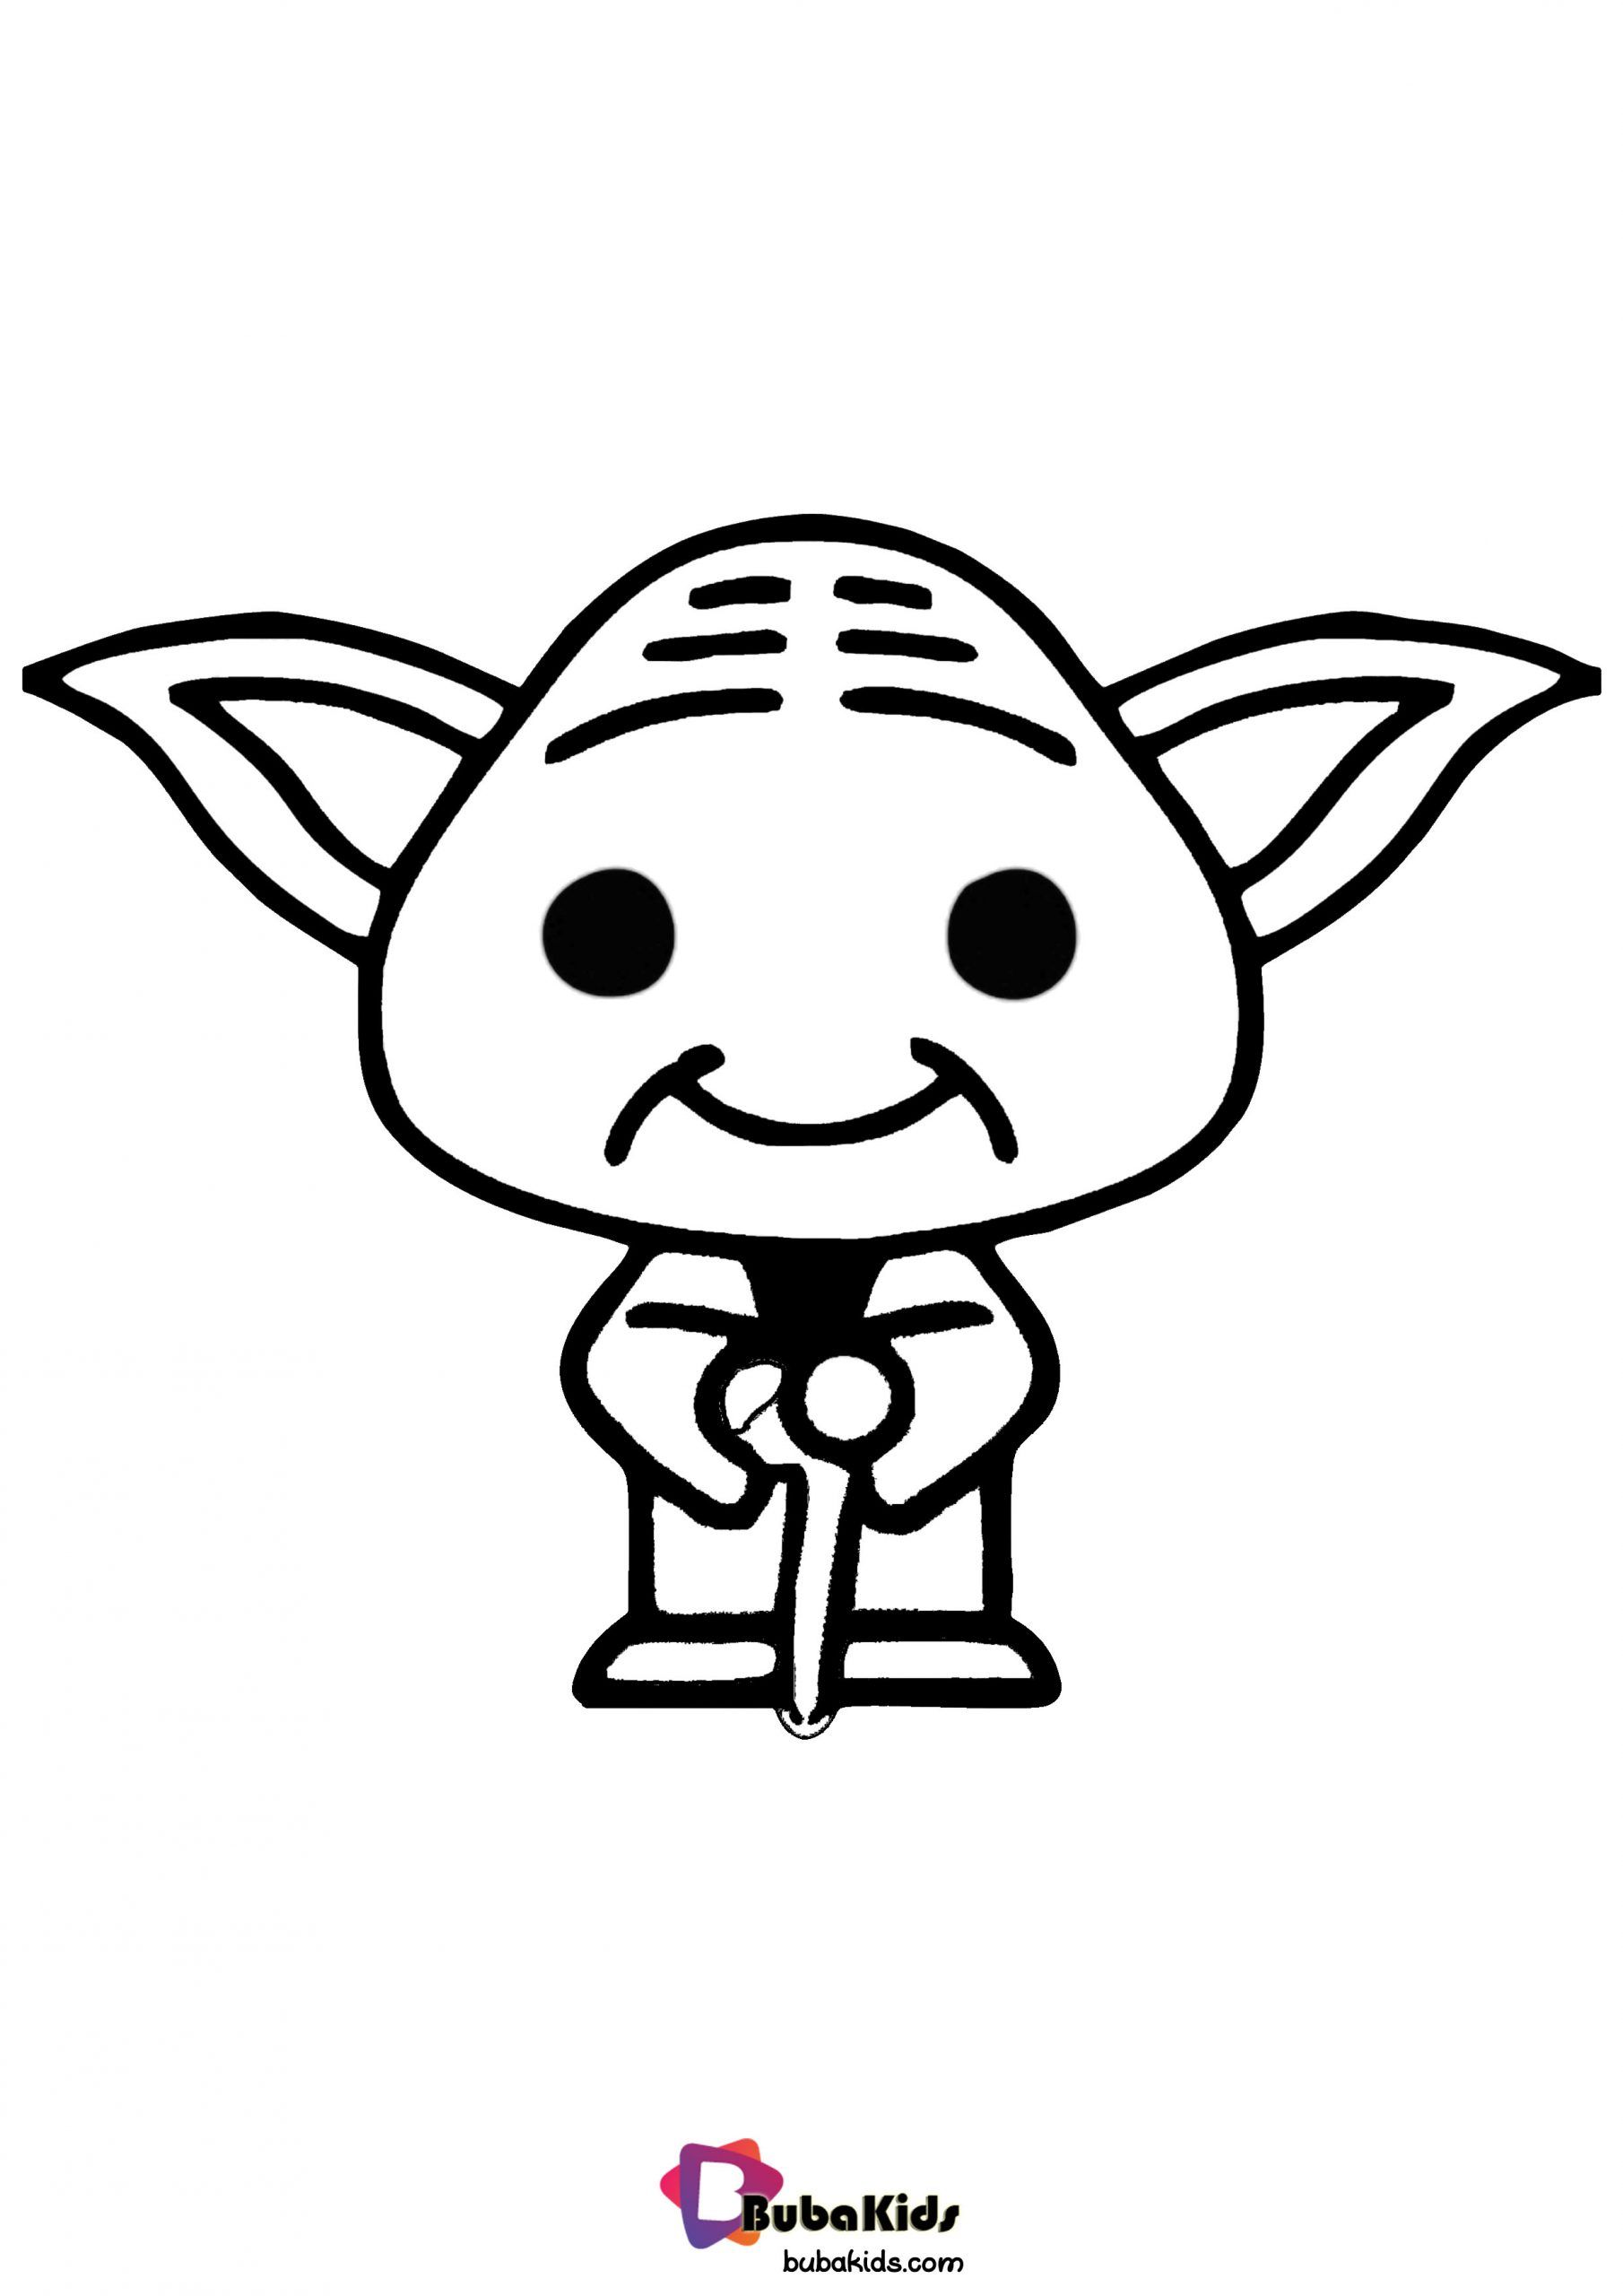 Baby Yoda Coloring Page Bubakids Com Collection Of Cartoon Coloring Pages For Teenage Printable Th Coloring Pages Cartoon Coloring Pages Animal Coloring Pages